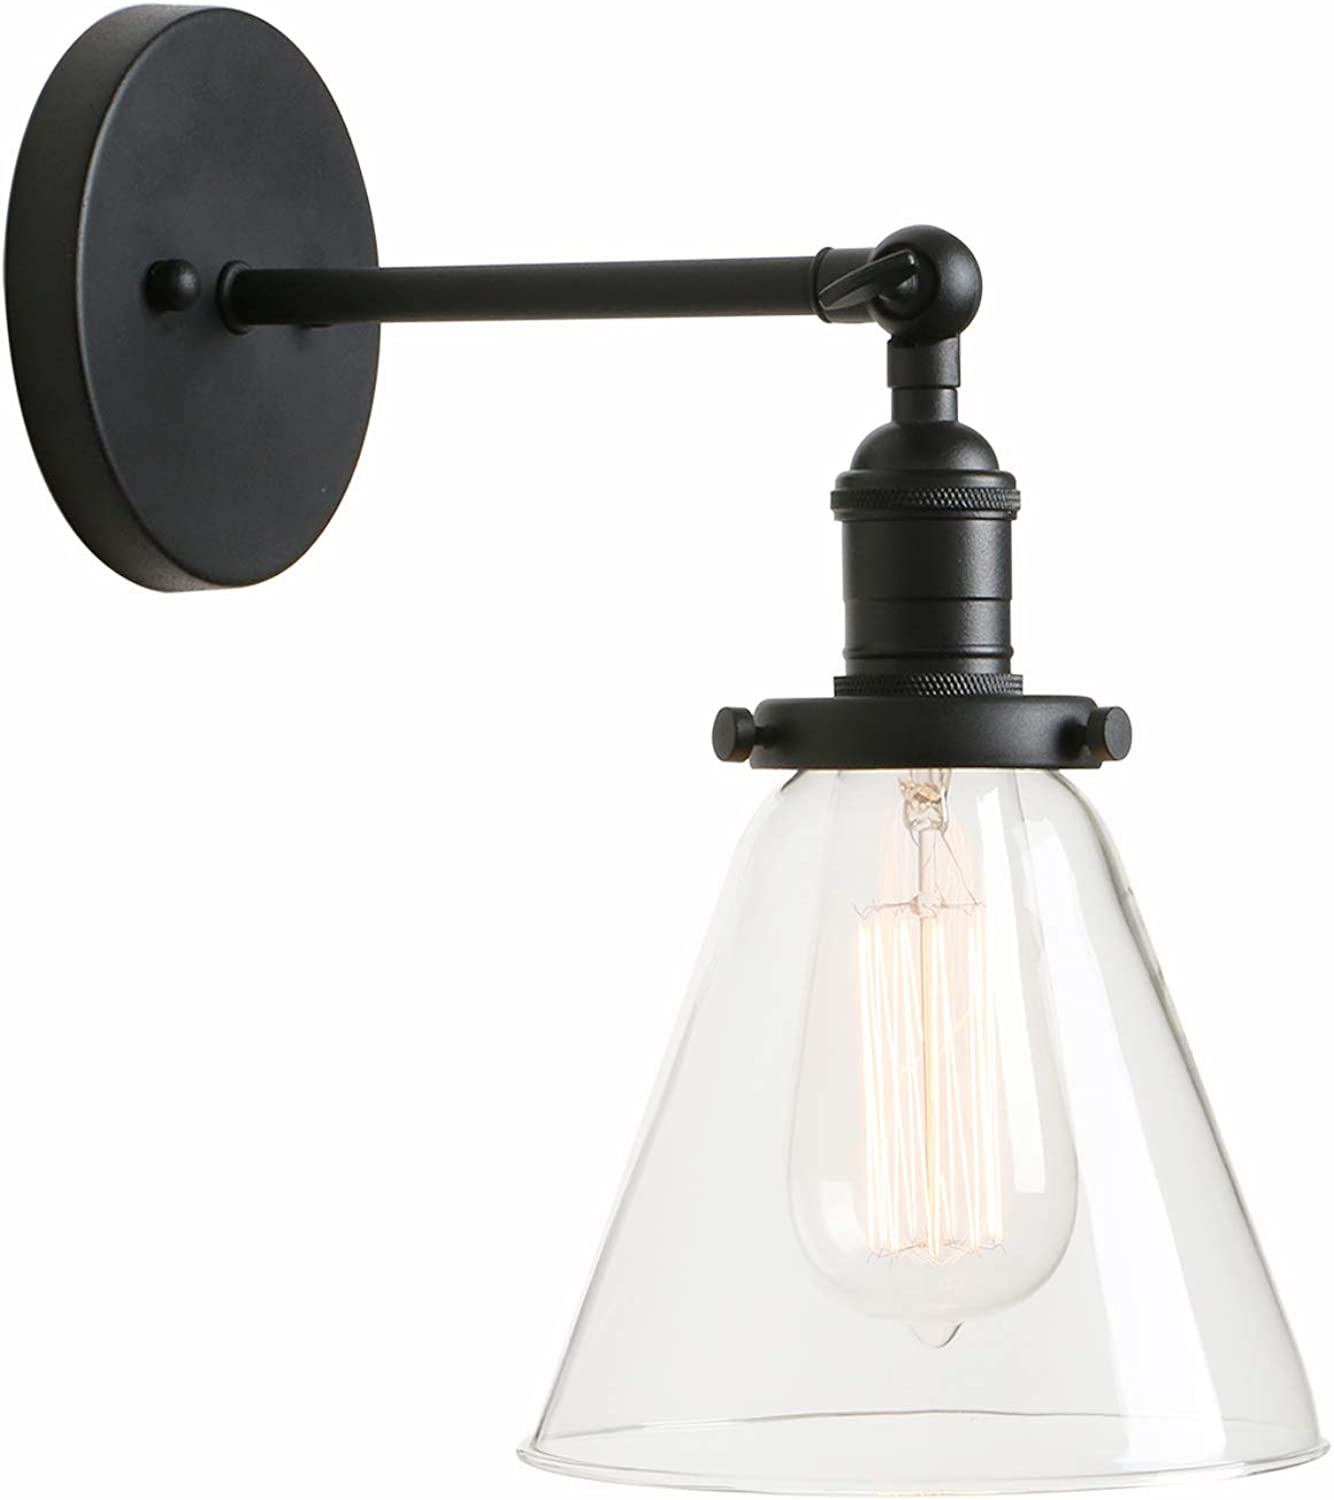 Permo Industrial Wall Sconce Lighting with On Off Switch Funnel Flared Clear Glass Hand Blown Shade (Black)